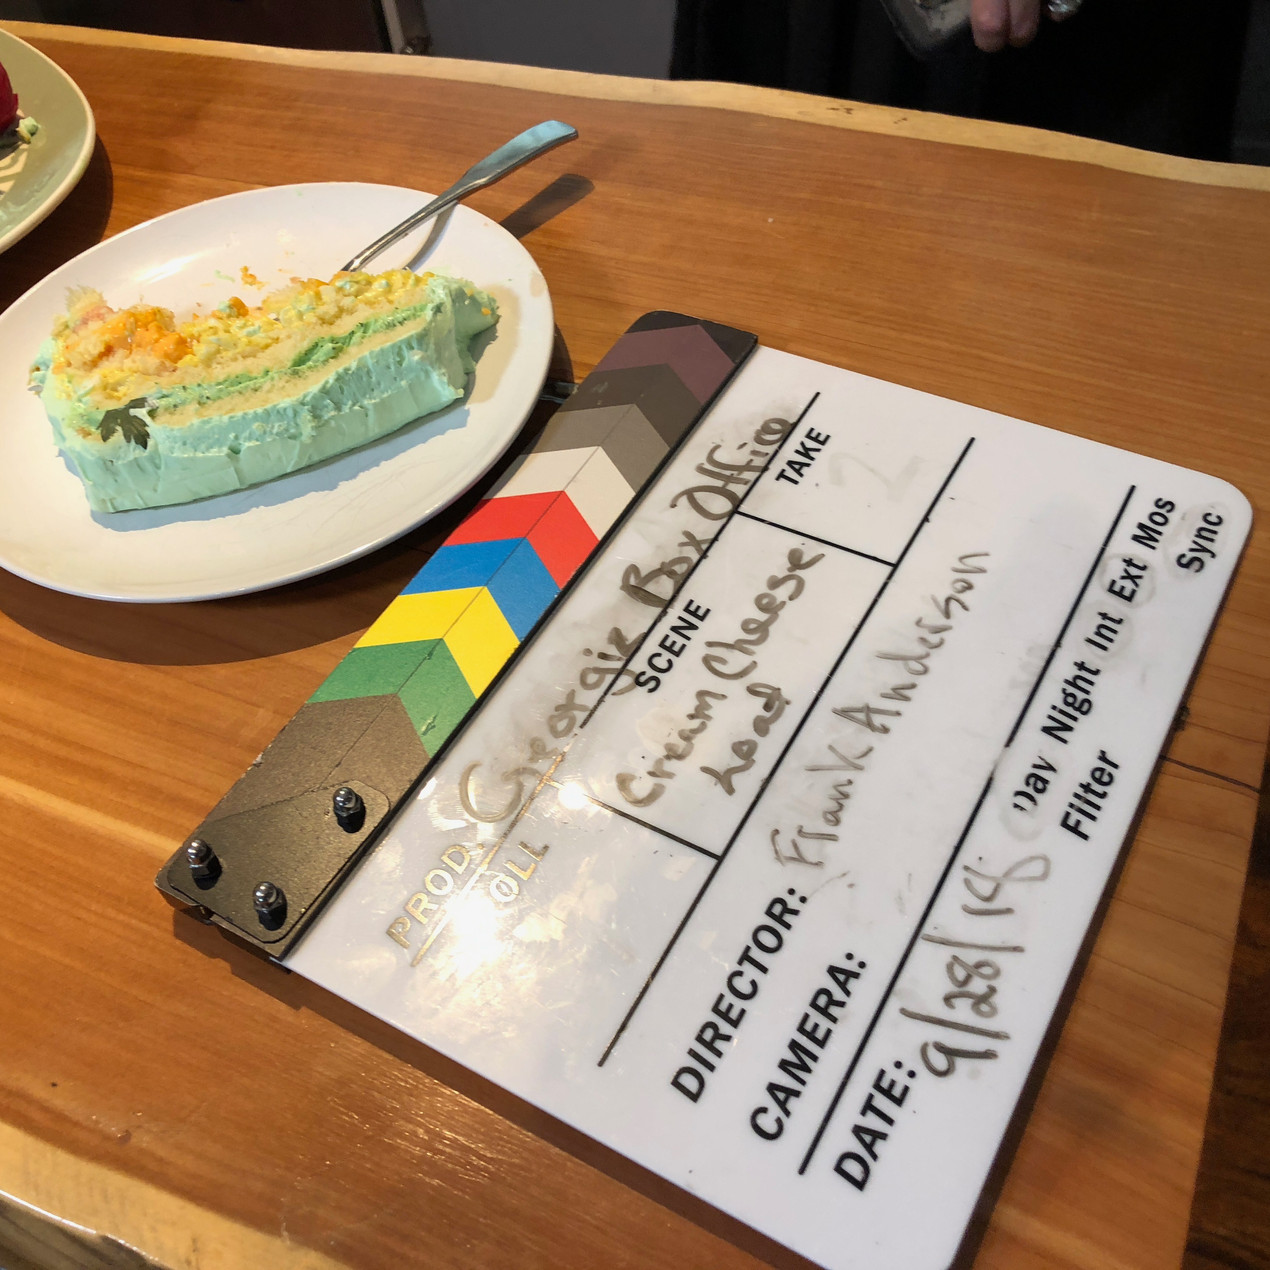 Georgia Box Office Slate and a slice of cream cheese loaf